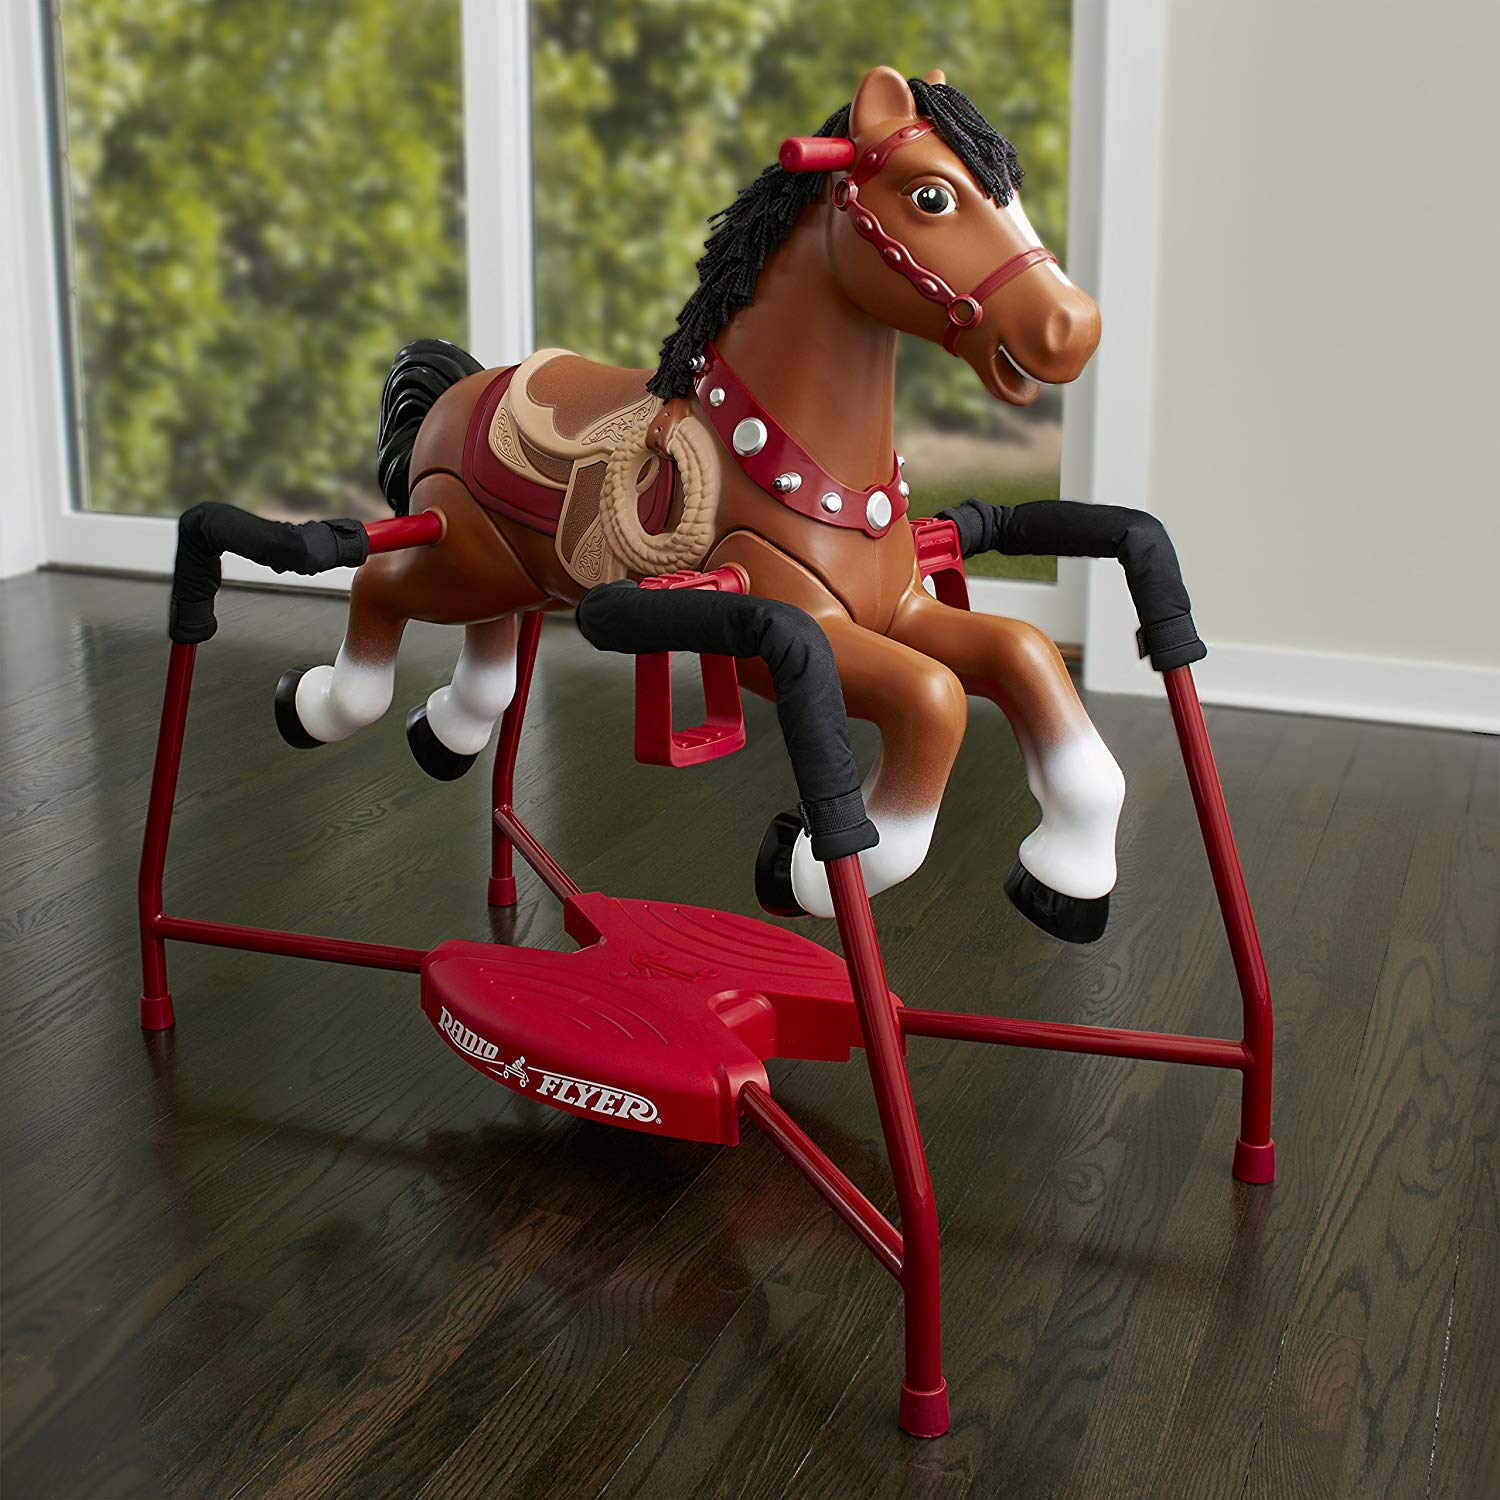 Radio Flyer Plush Interactive Riding Horse